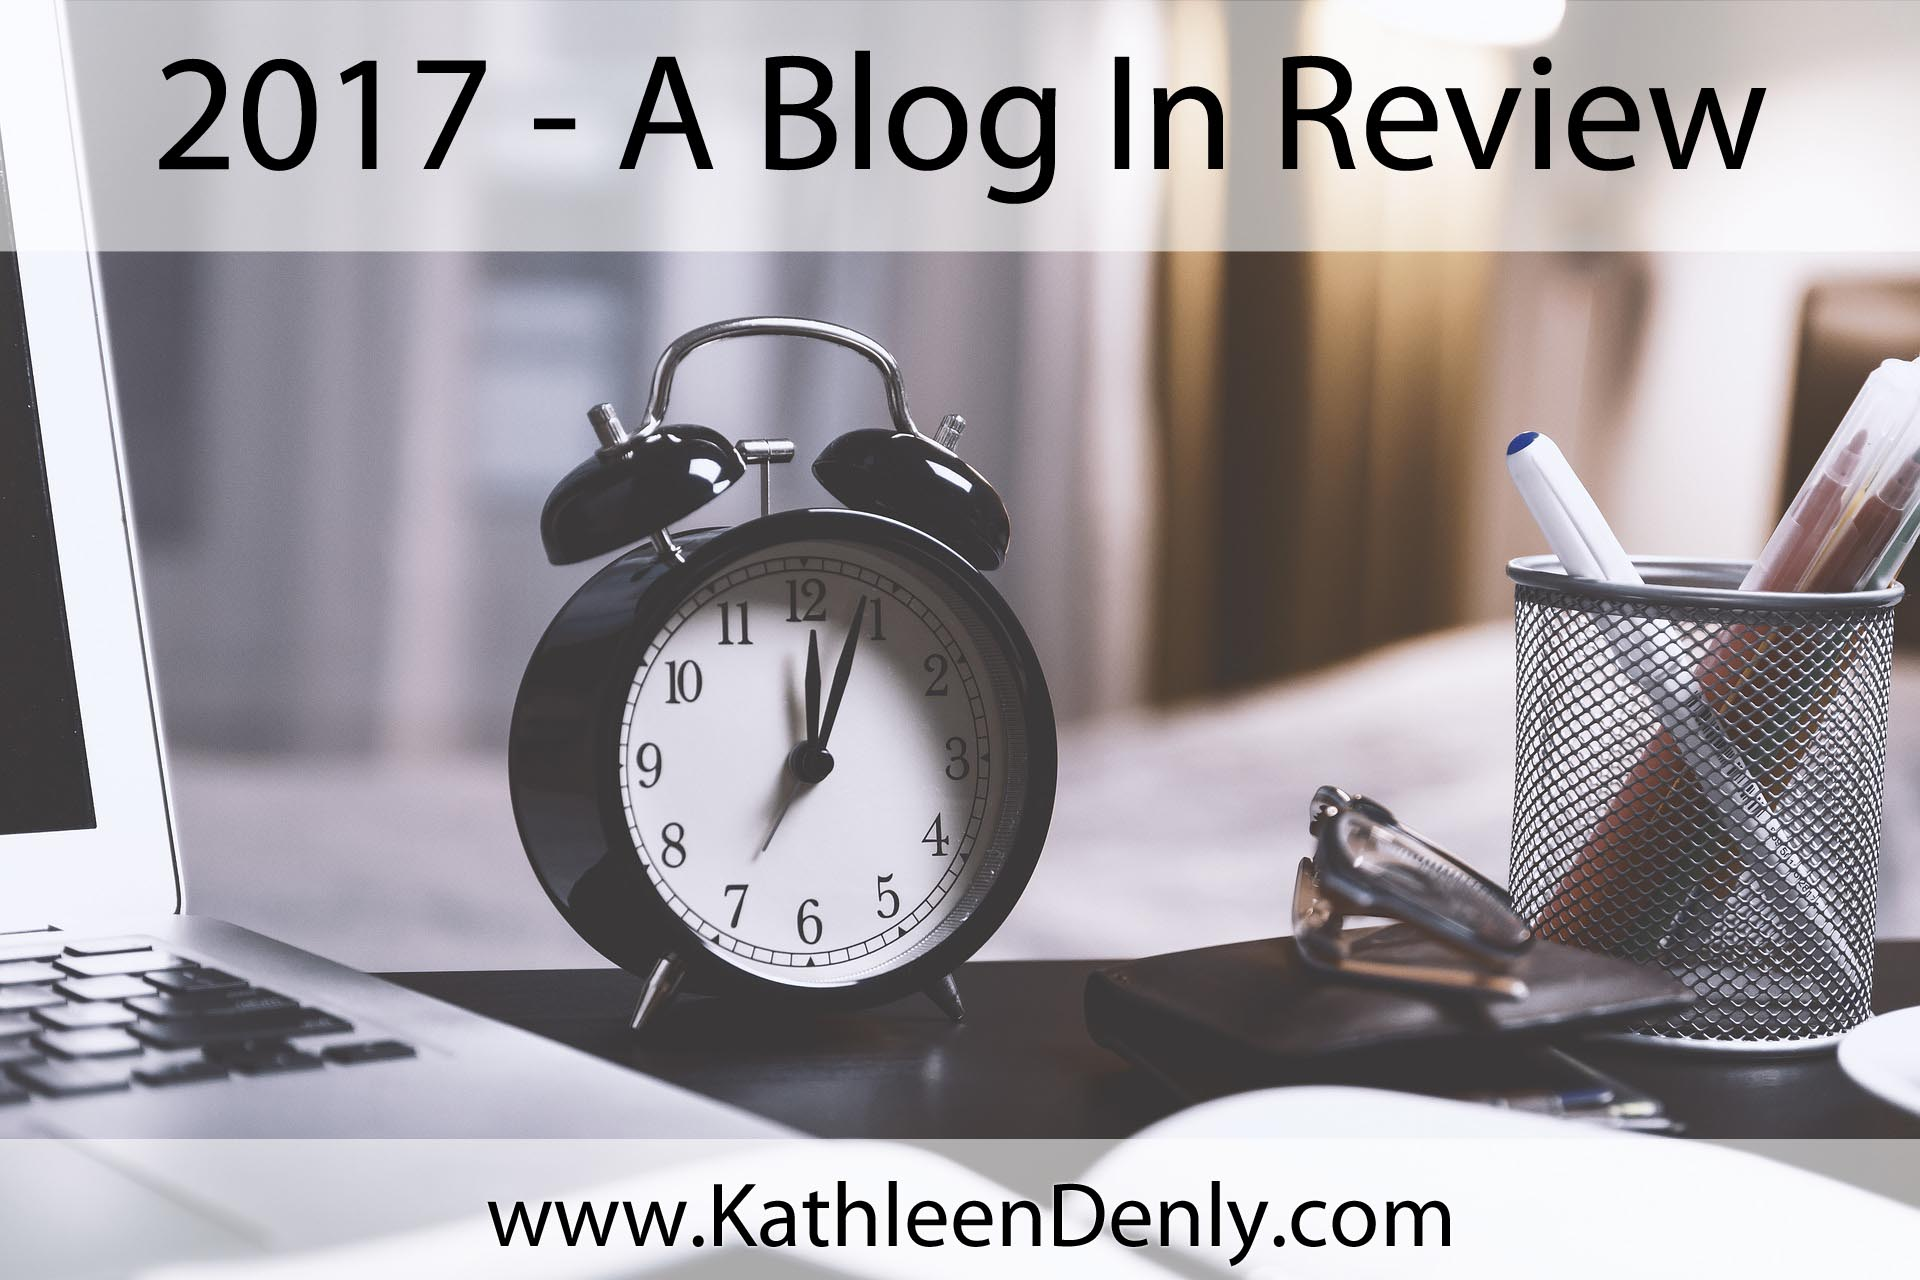 A Blog in Review 2017